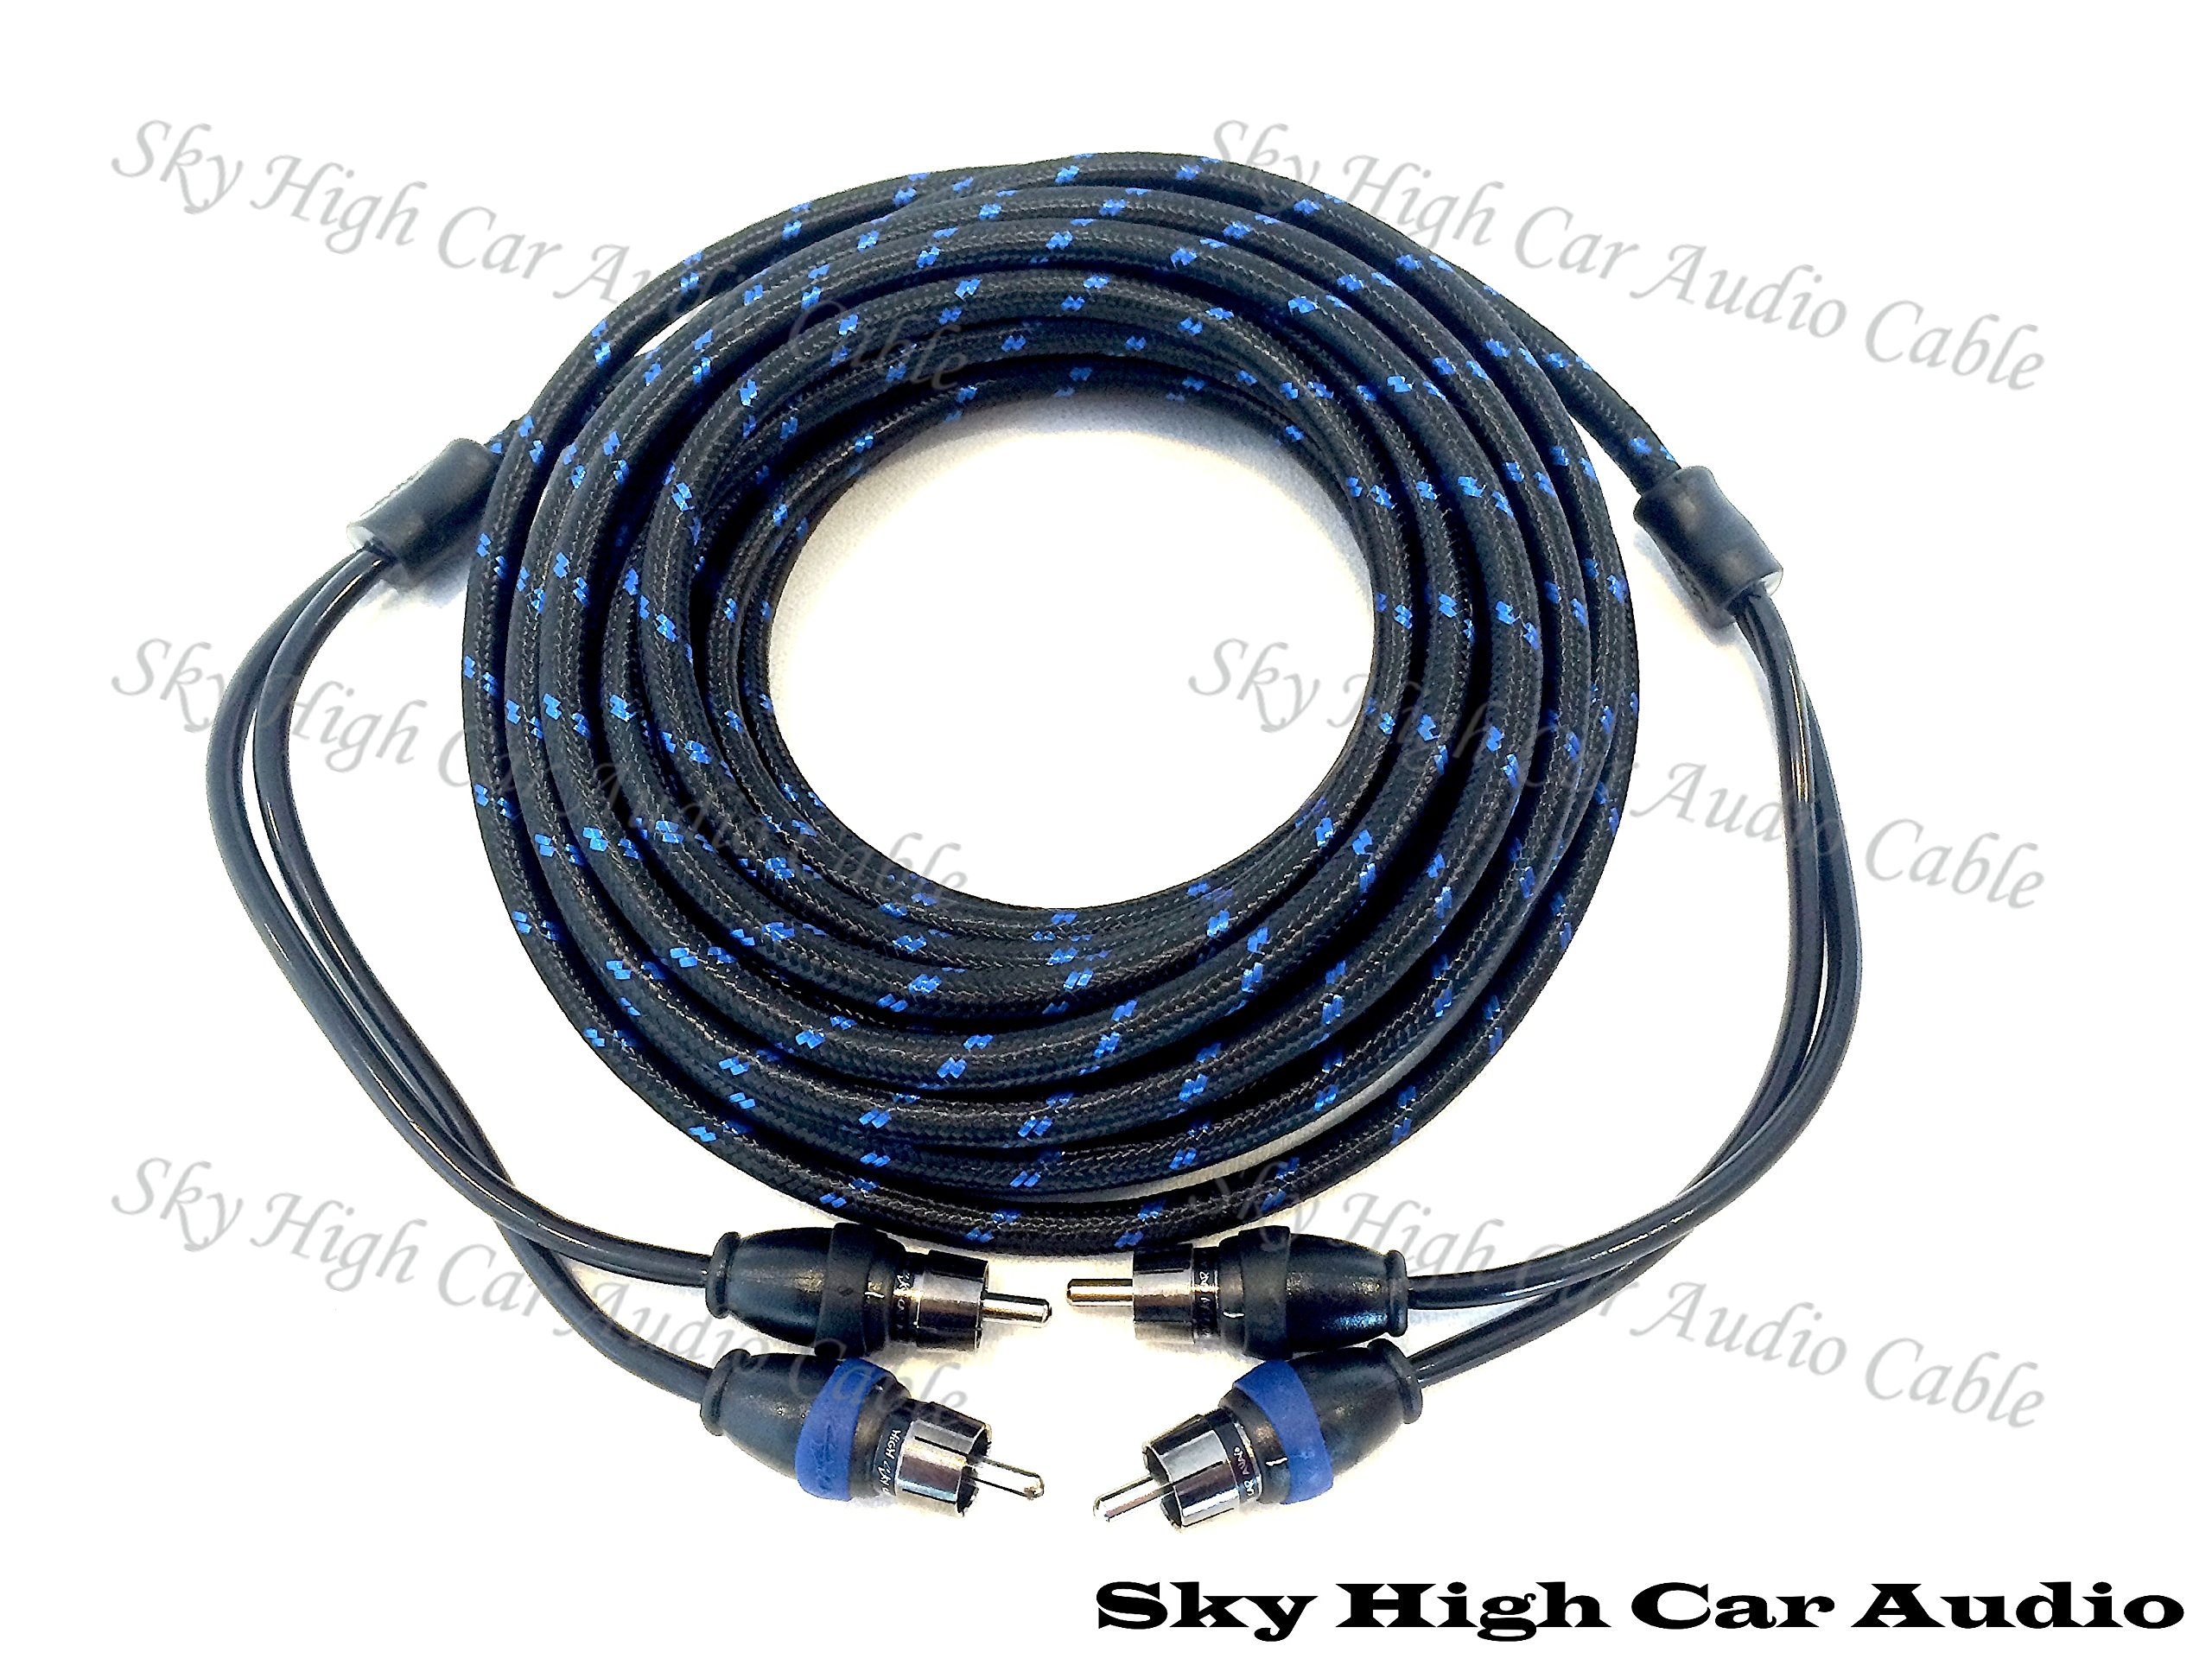 Sky High Car Audio 2 Channel 6 ft RCA Cables Triple Shield Nylon Coated